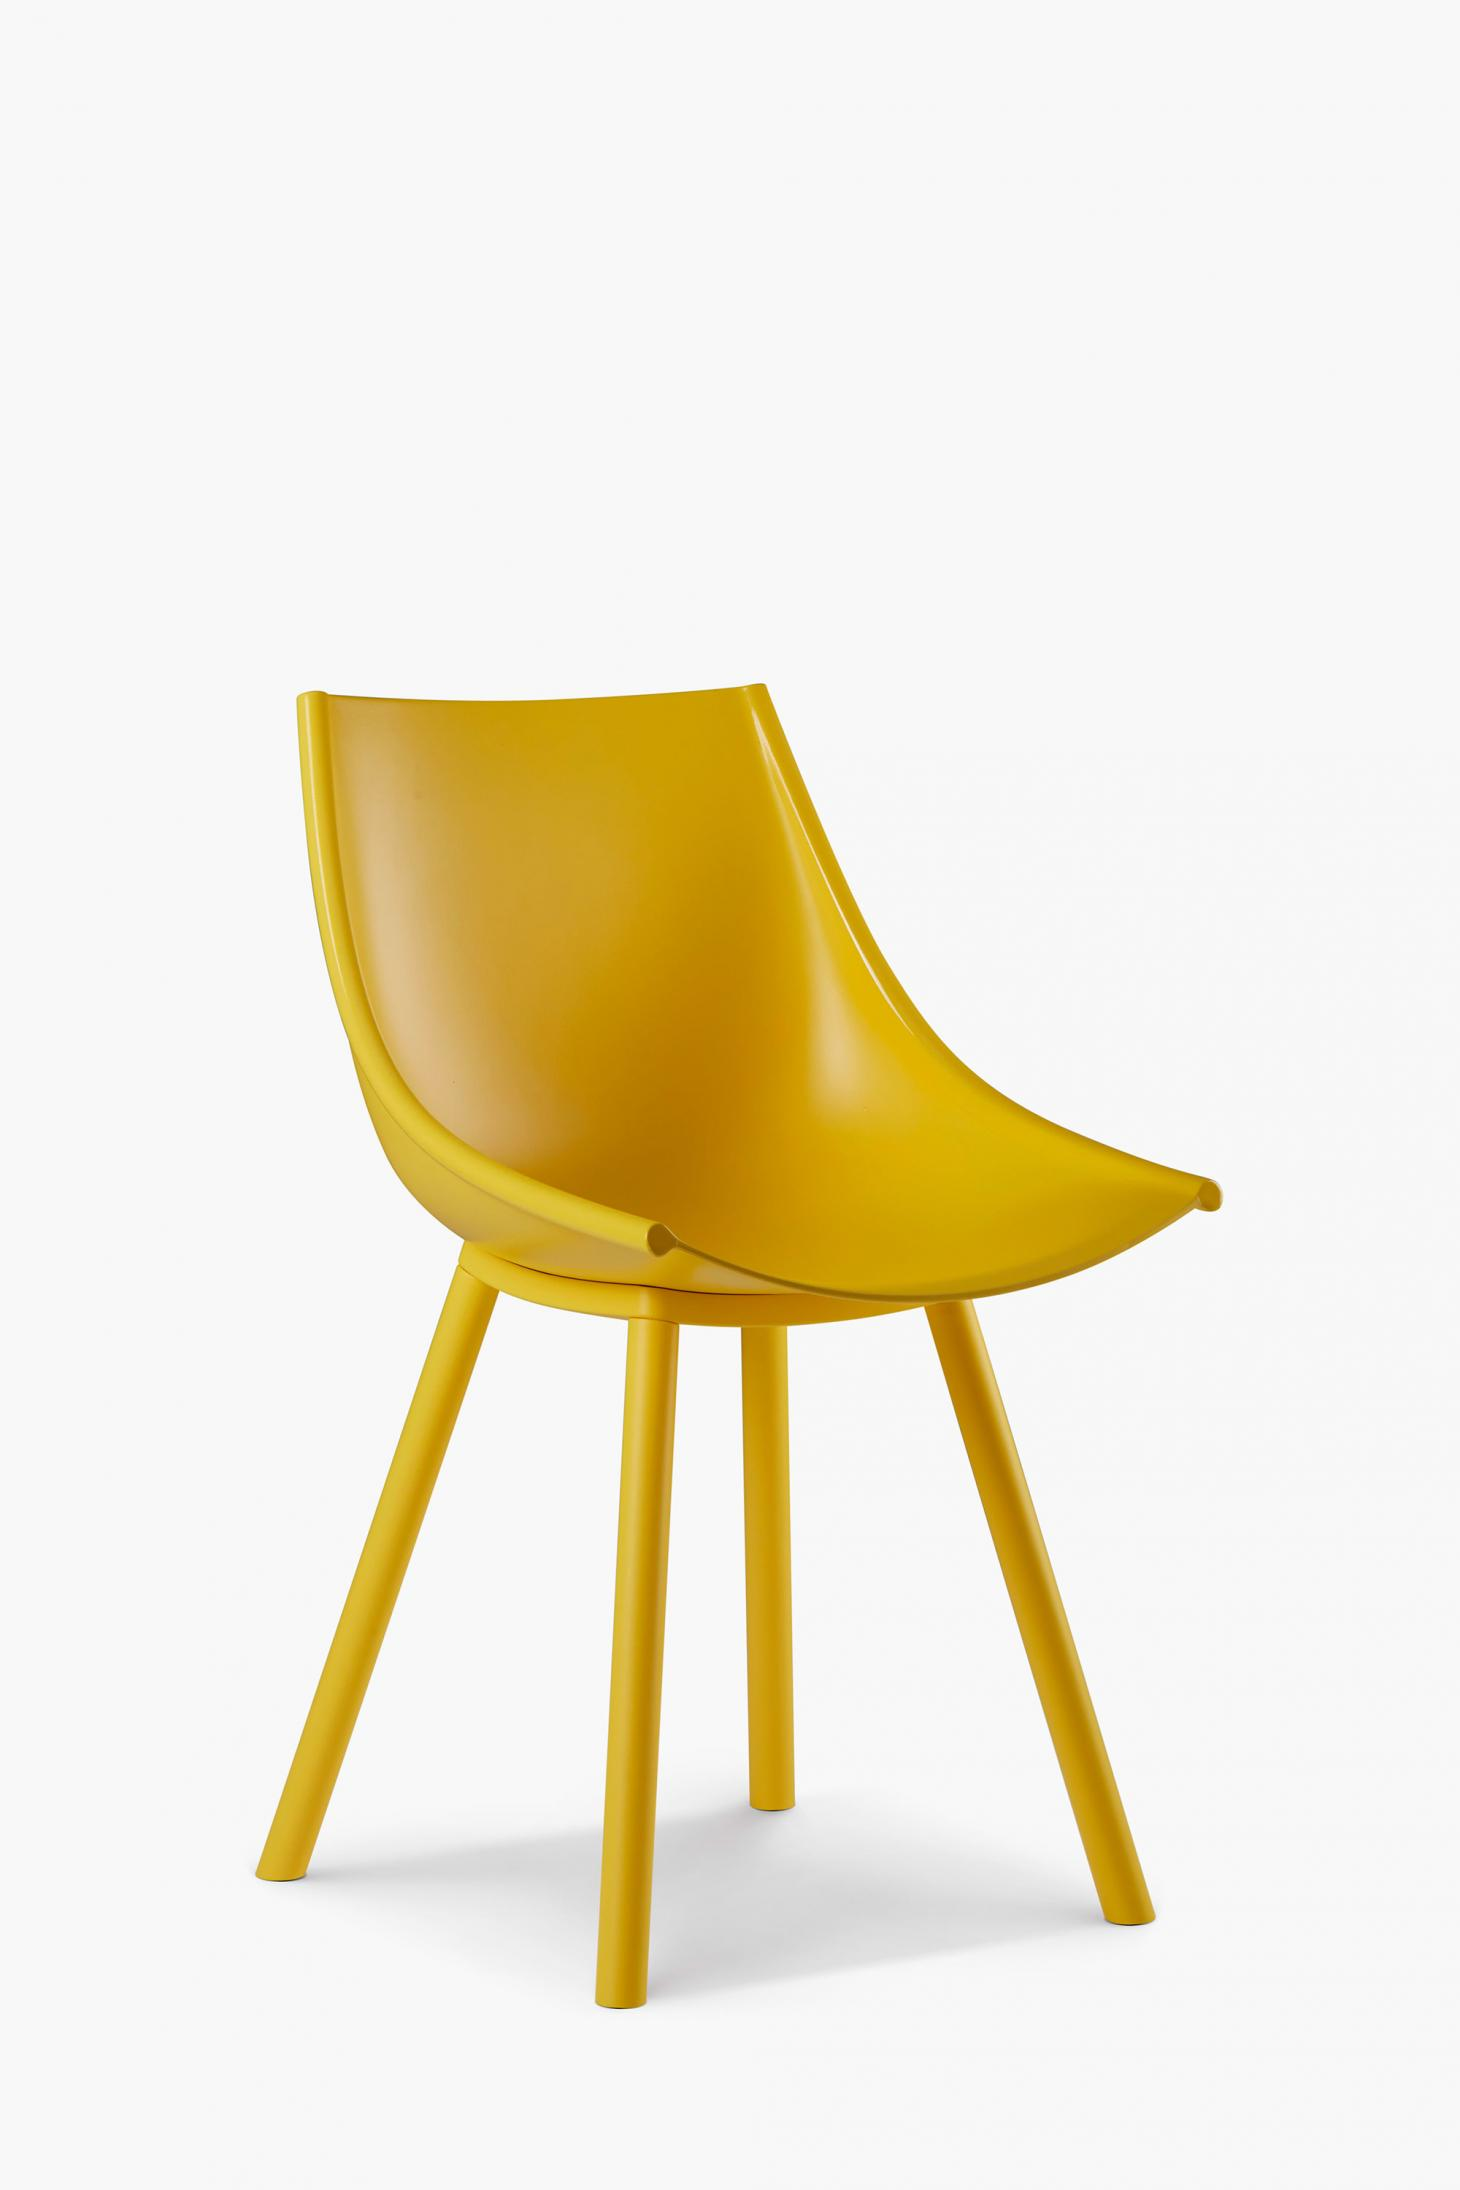 2015 Silk Chair, Beijing, China